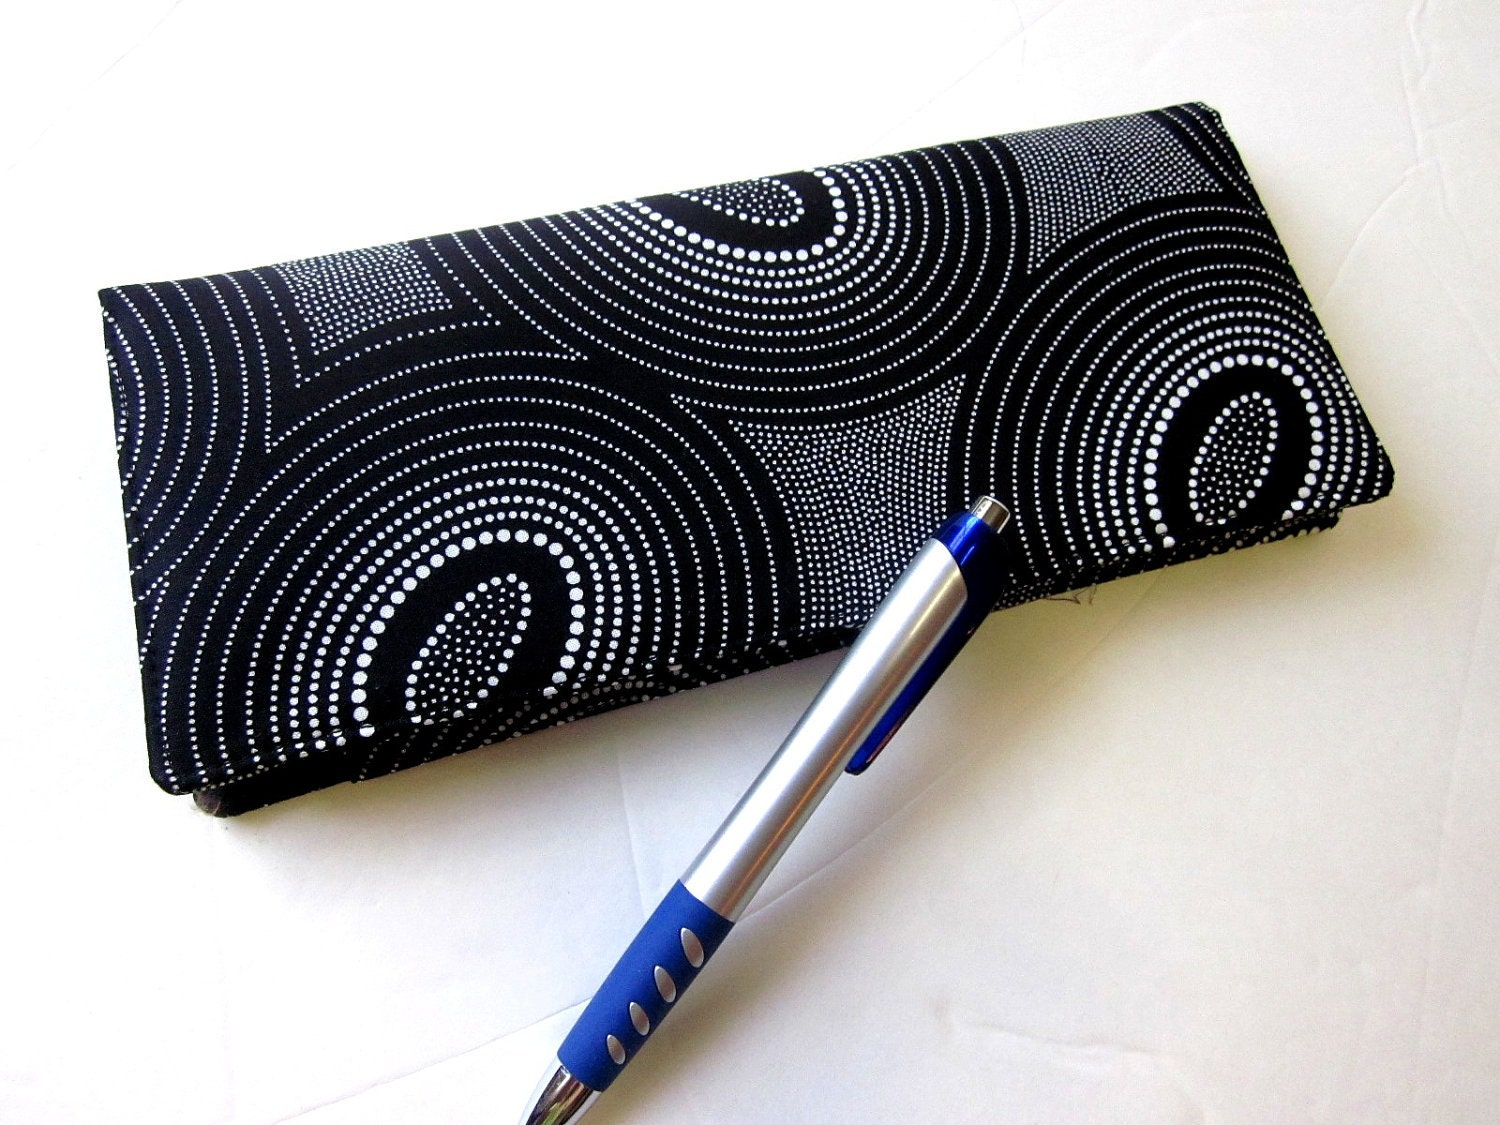 Business Cheque Book Covers : Handmade business checkbook cover black with dots and circles